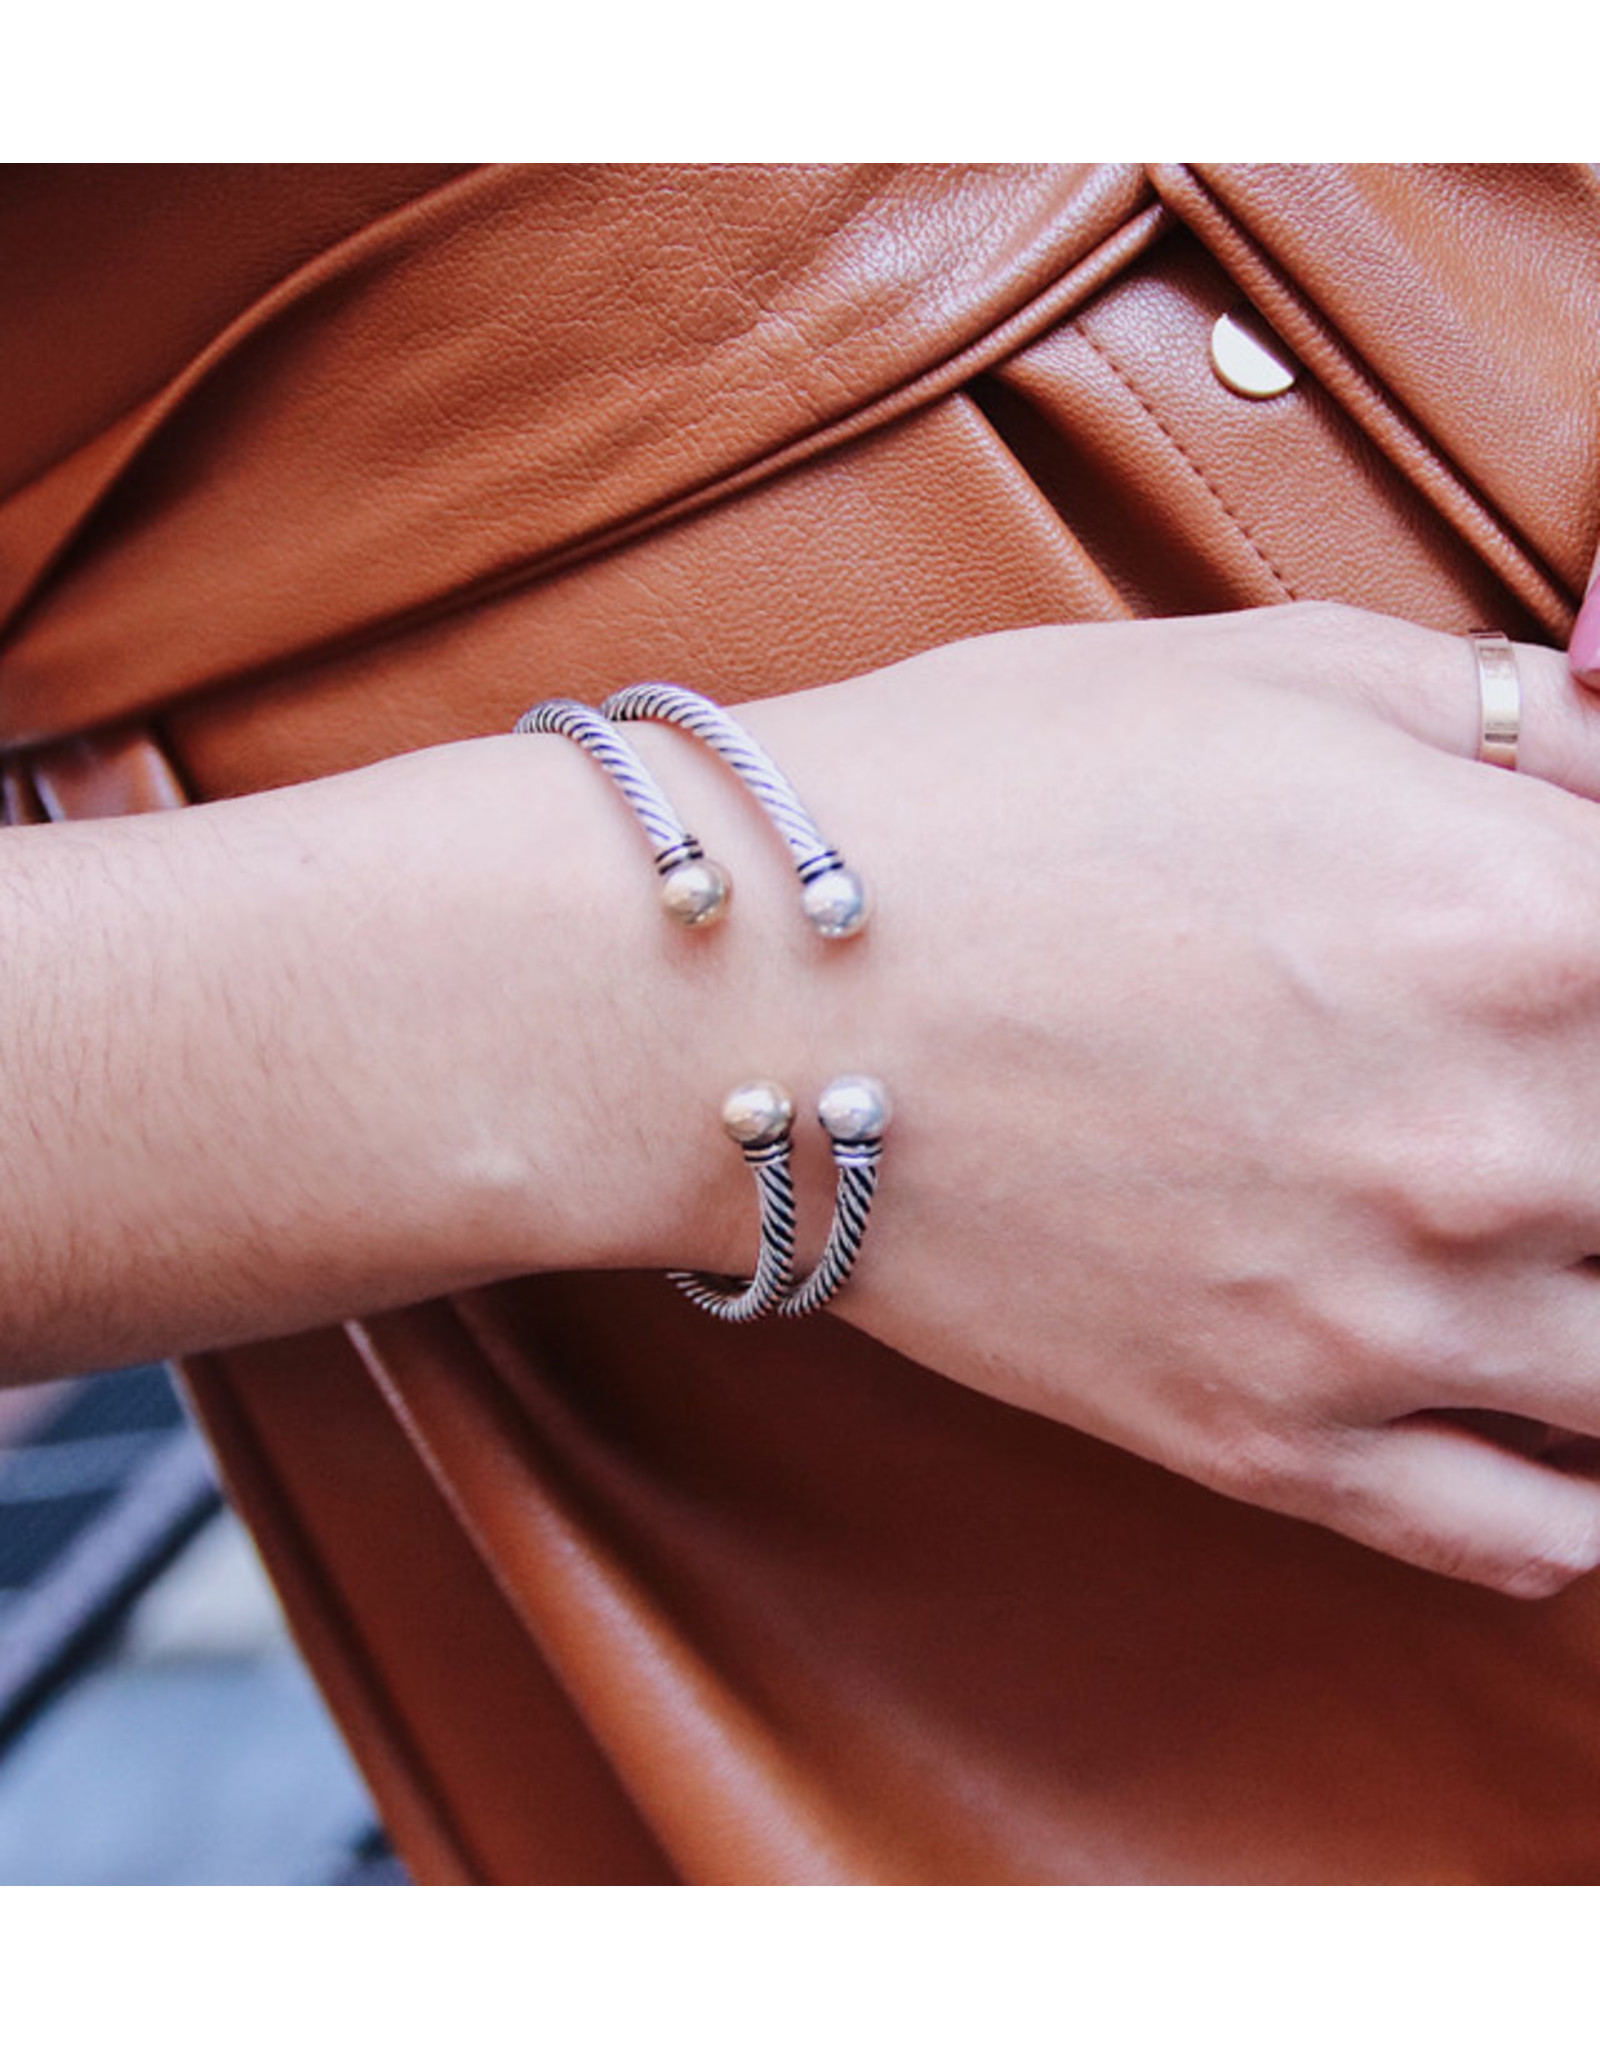 UMUT CABLE CUFF